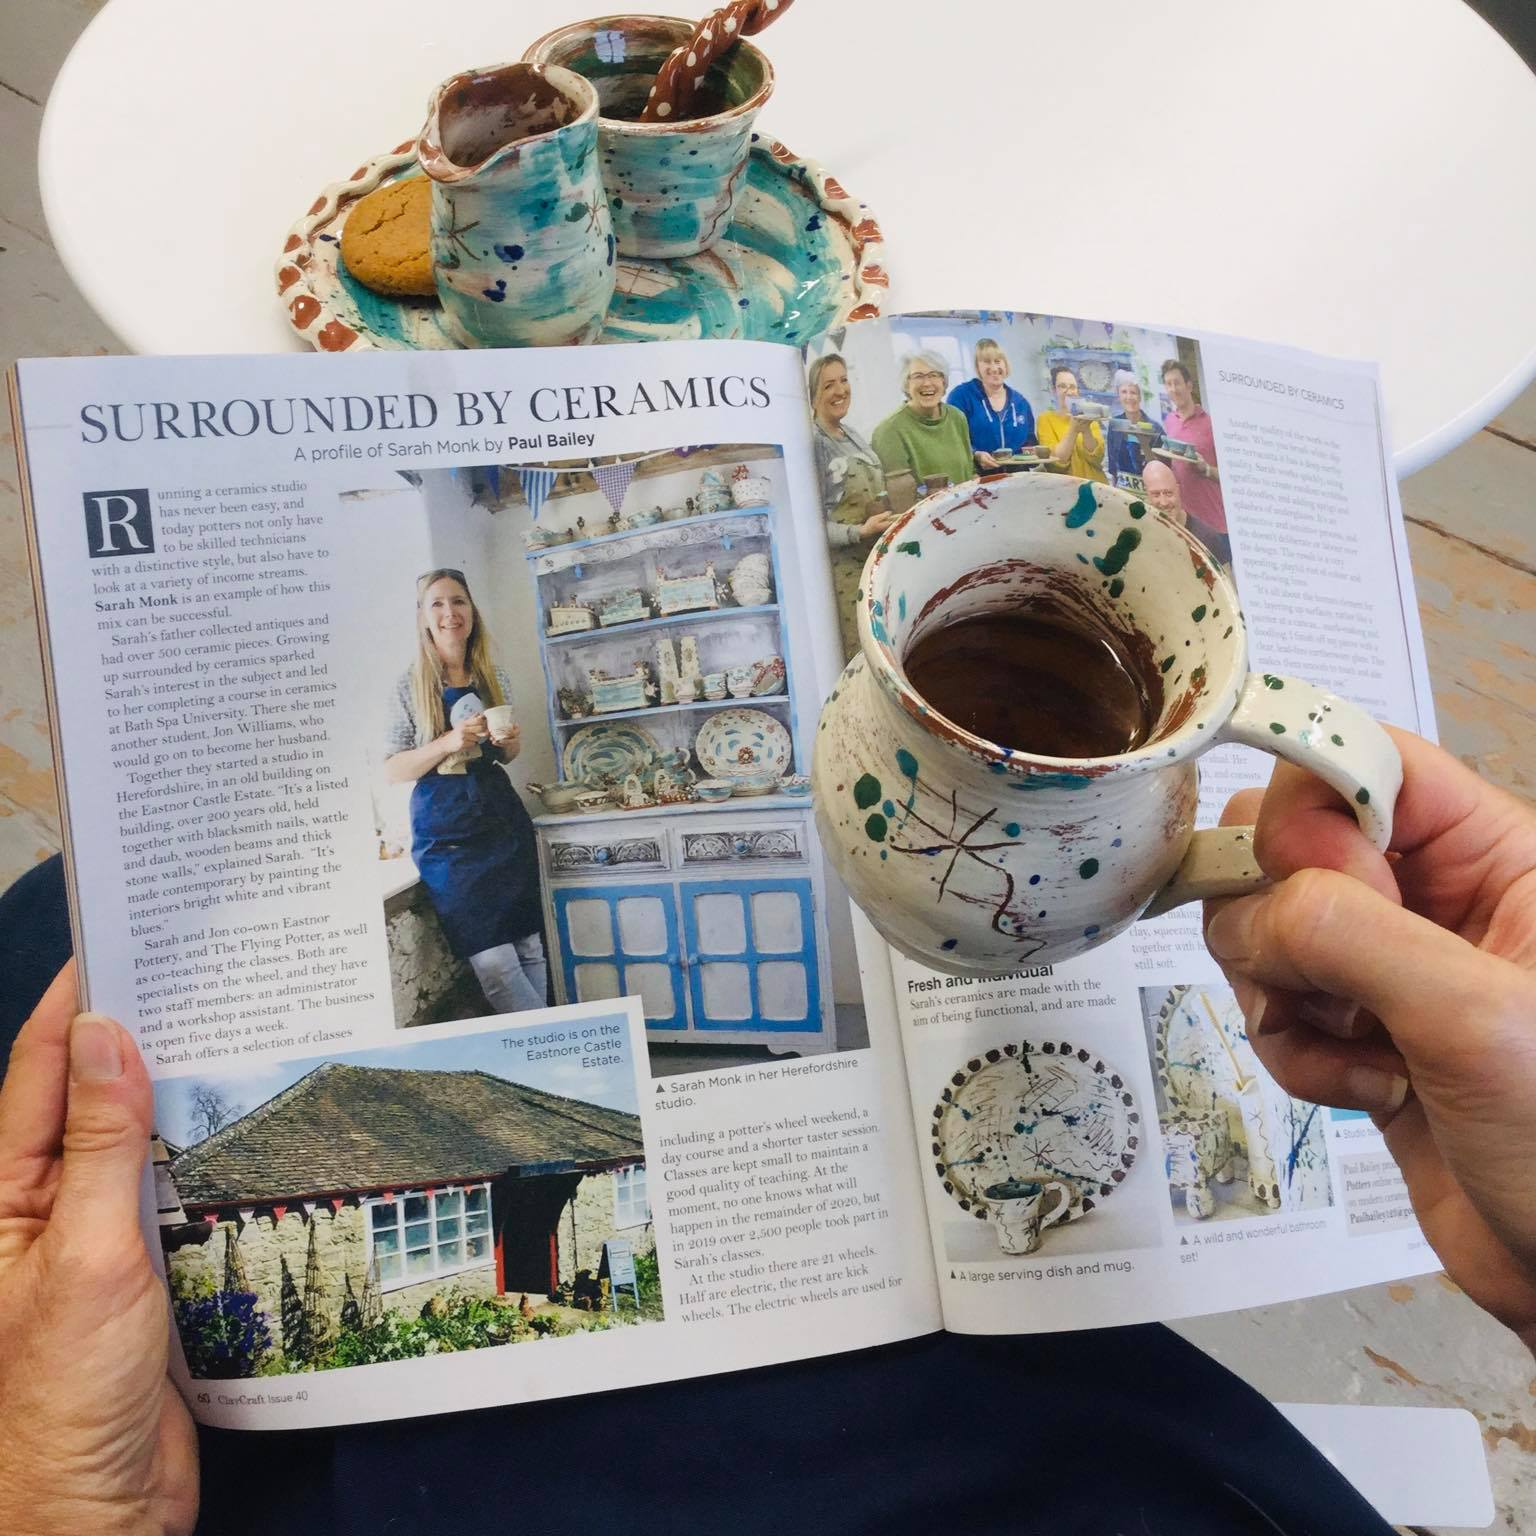 holding a slipware cup with tea inside and holding magazine article